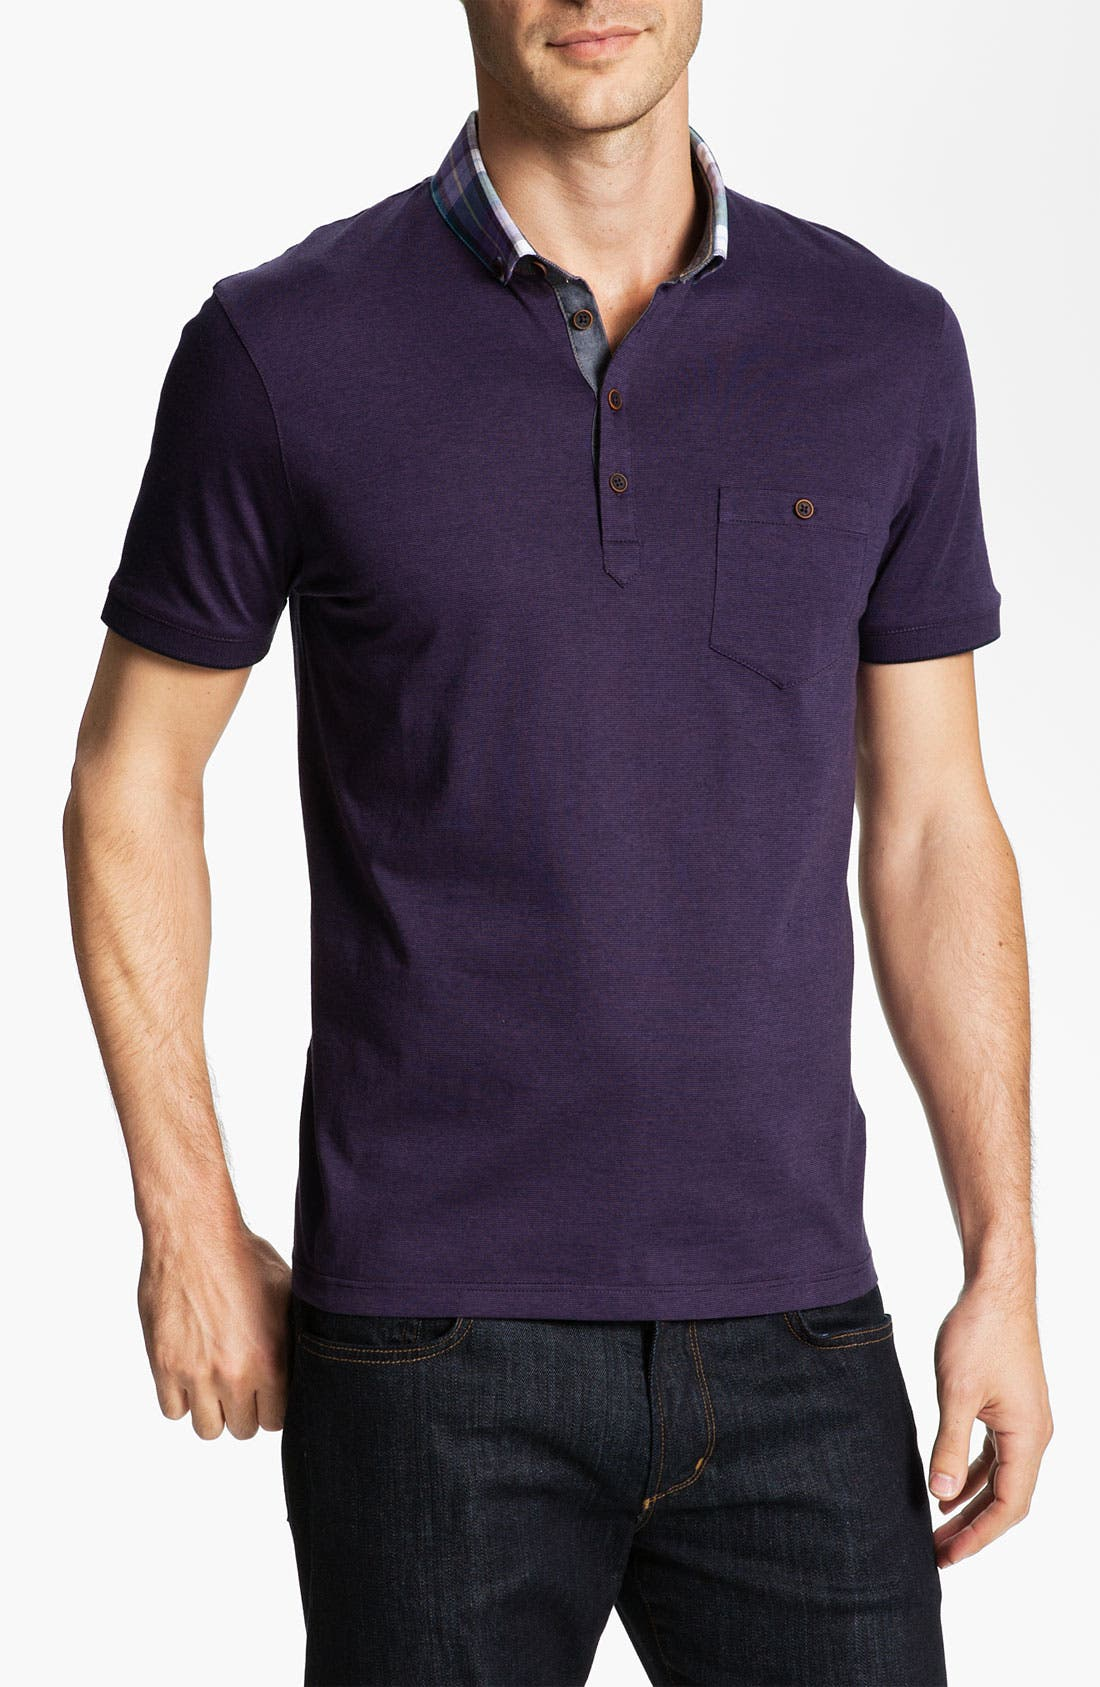 Alternate Image 1 Selected - Ted Baker London 'Theend' Woven Collar Polo